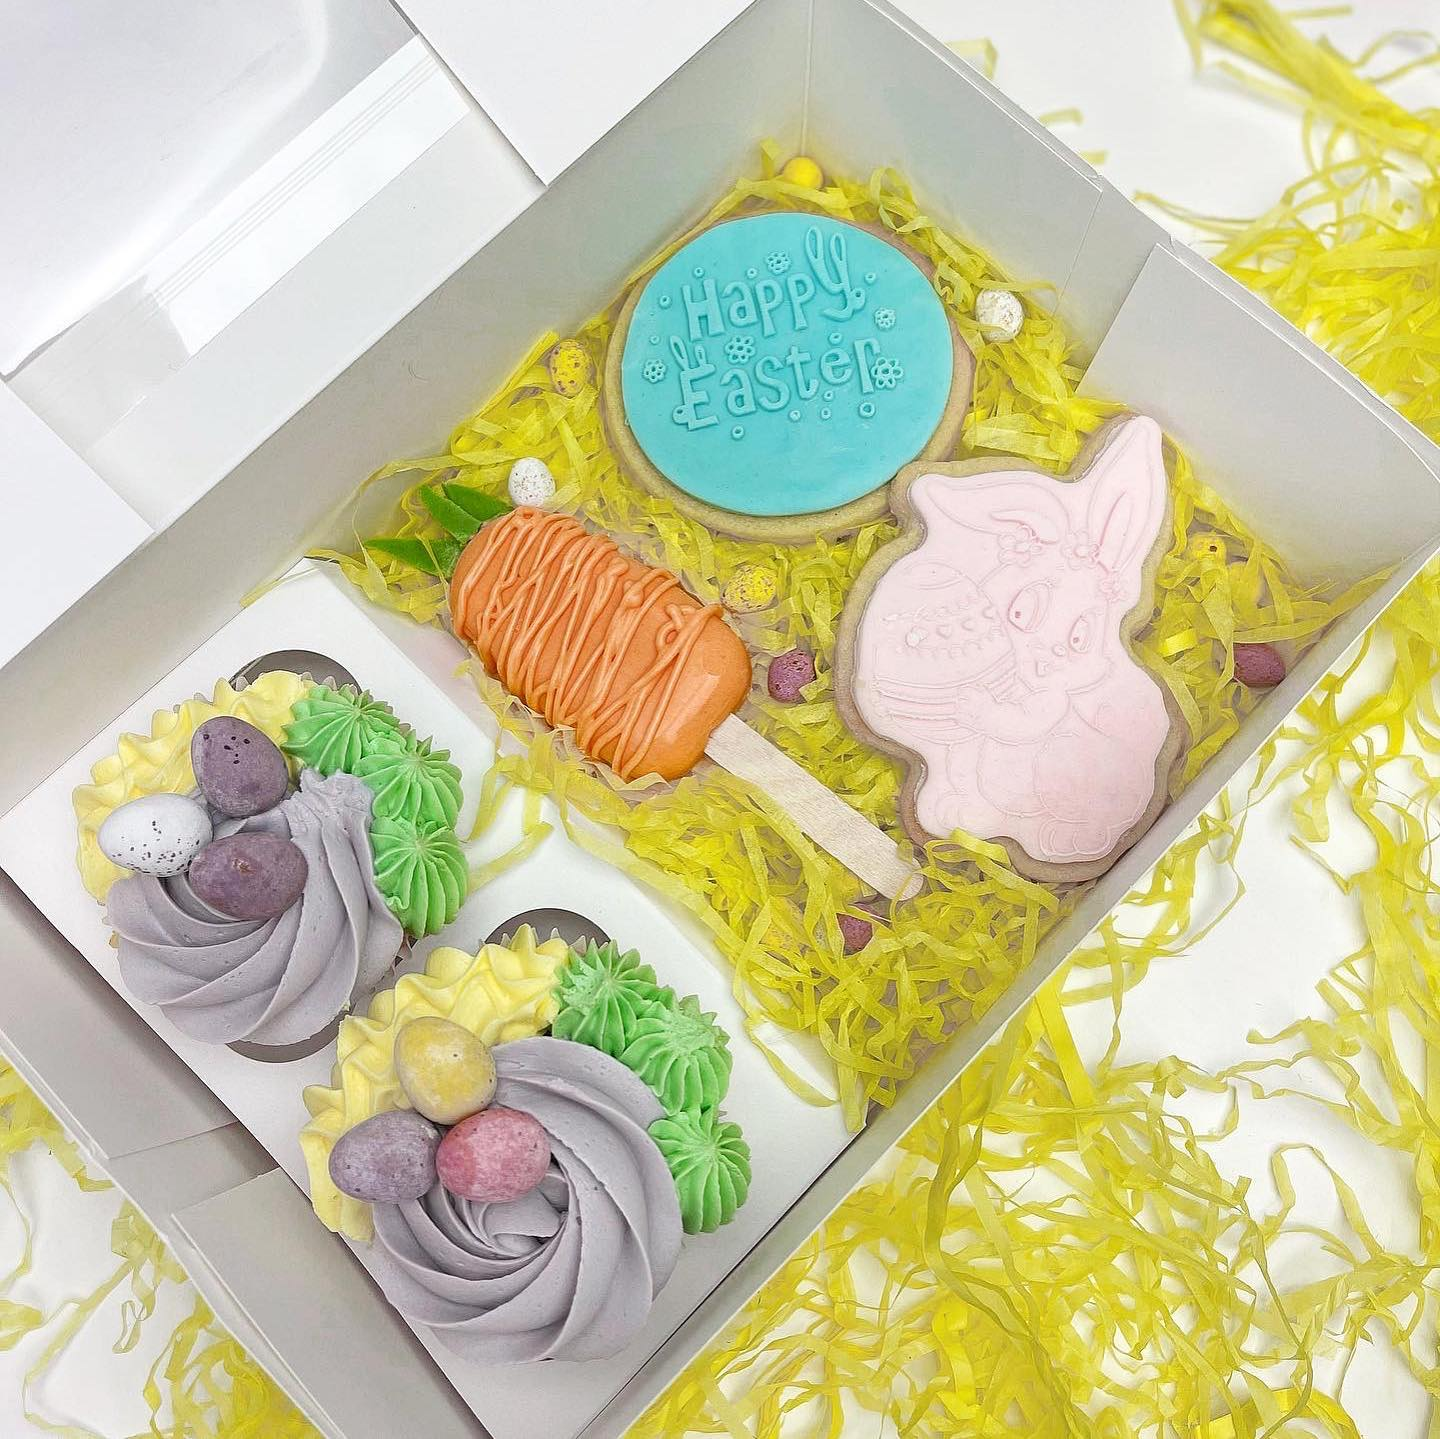 Bishop's Bakes Easter Treat Box